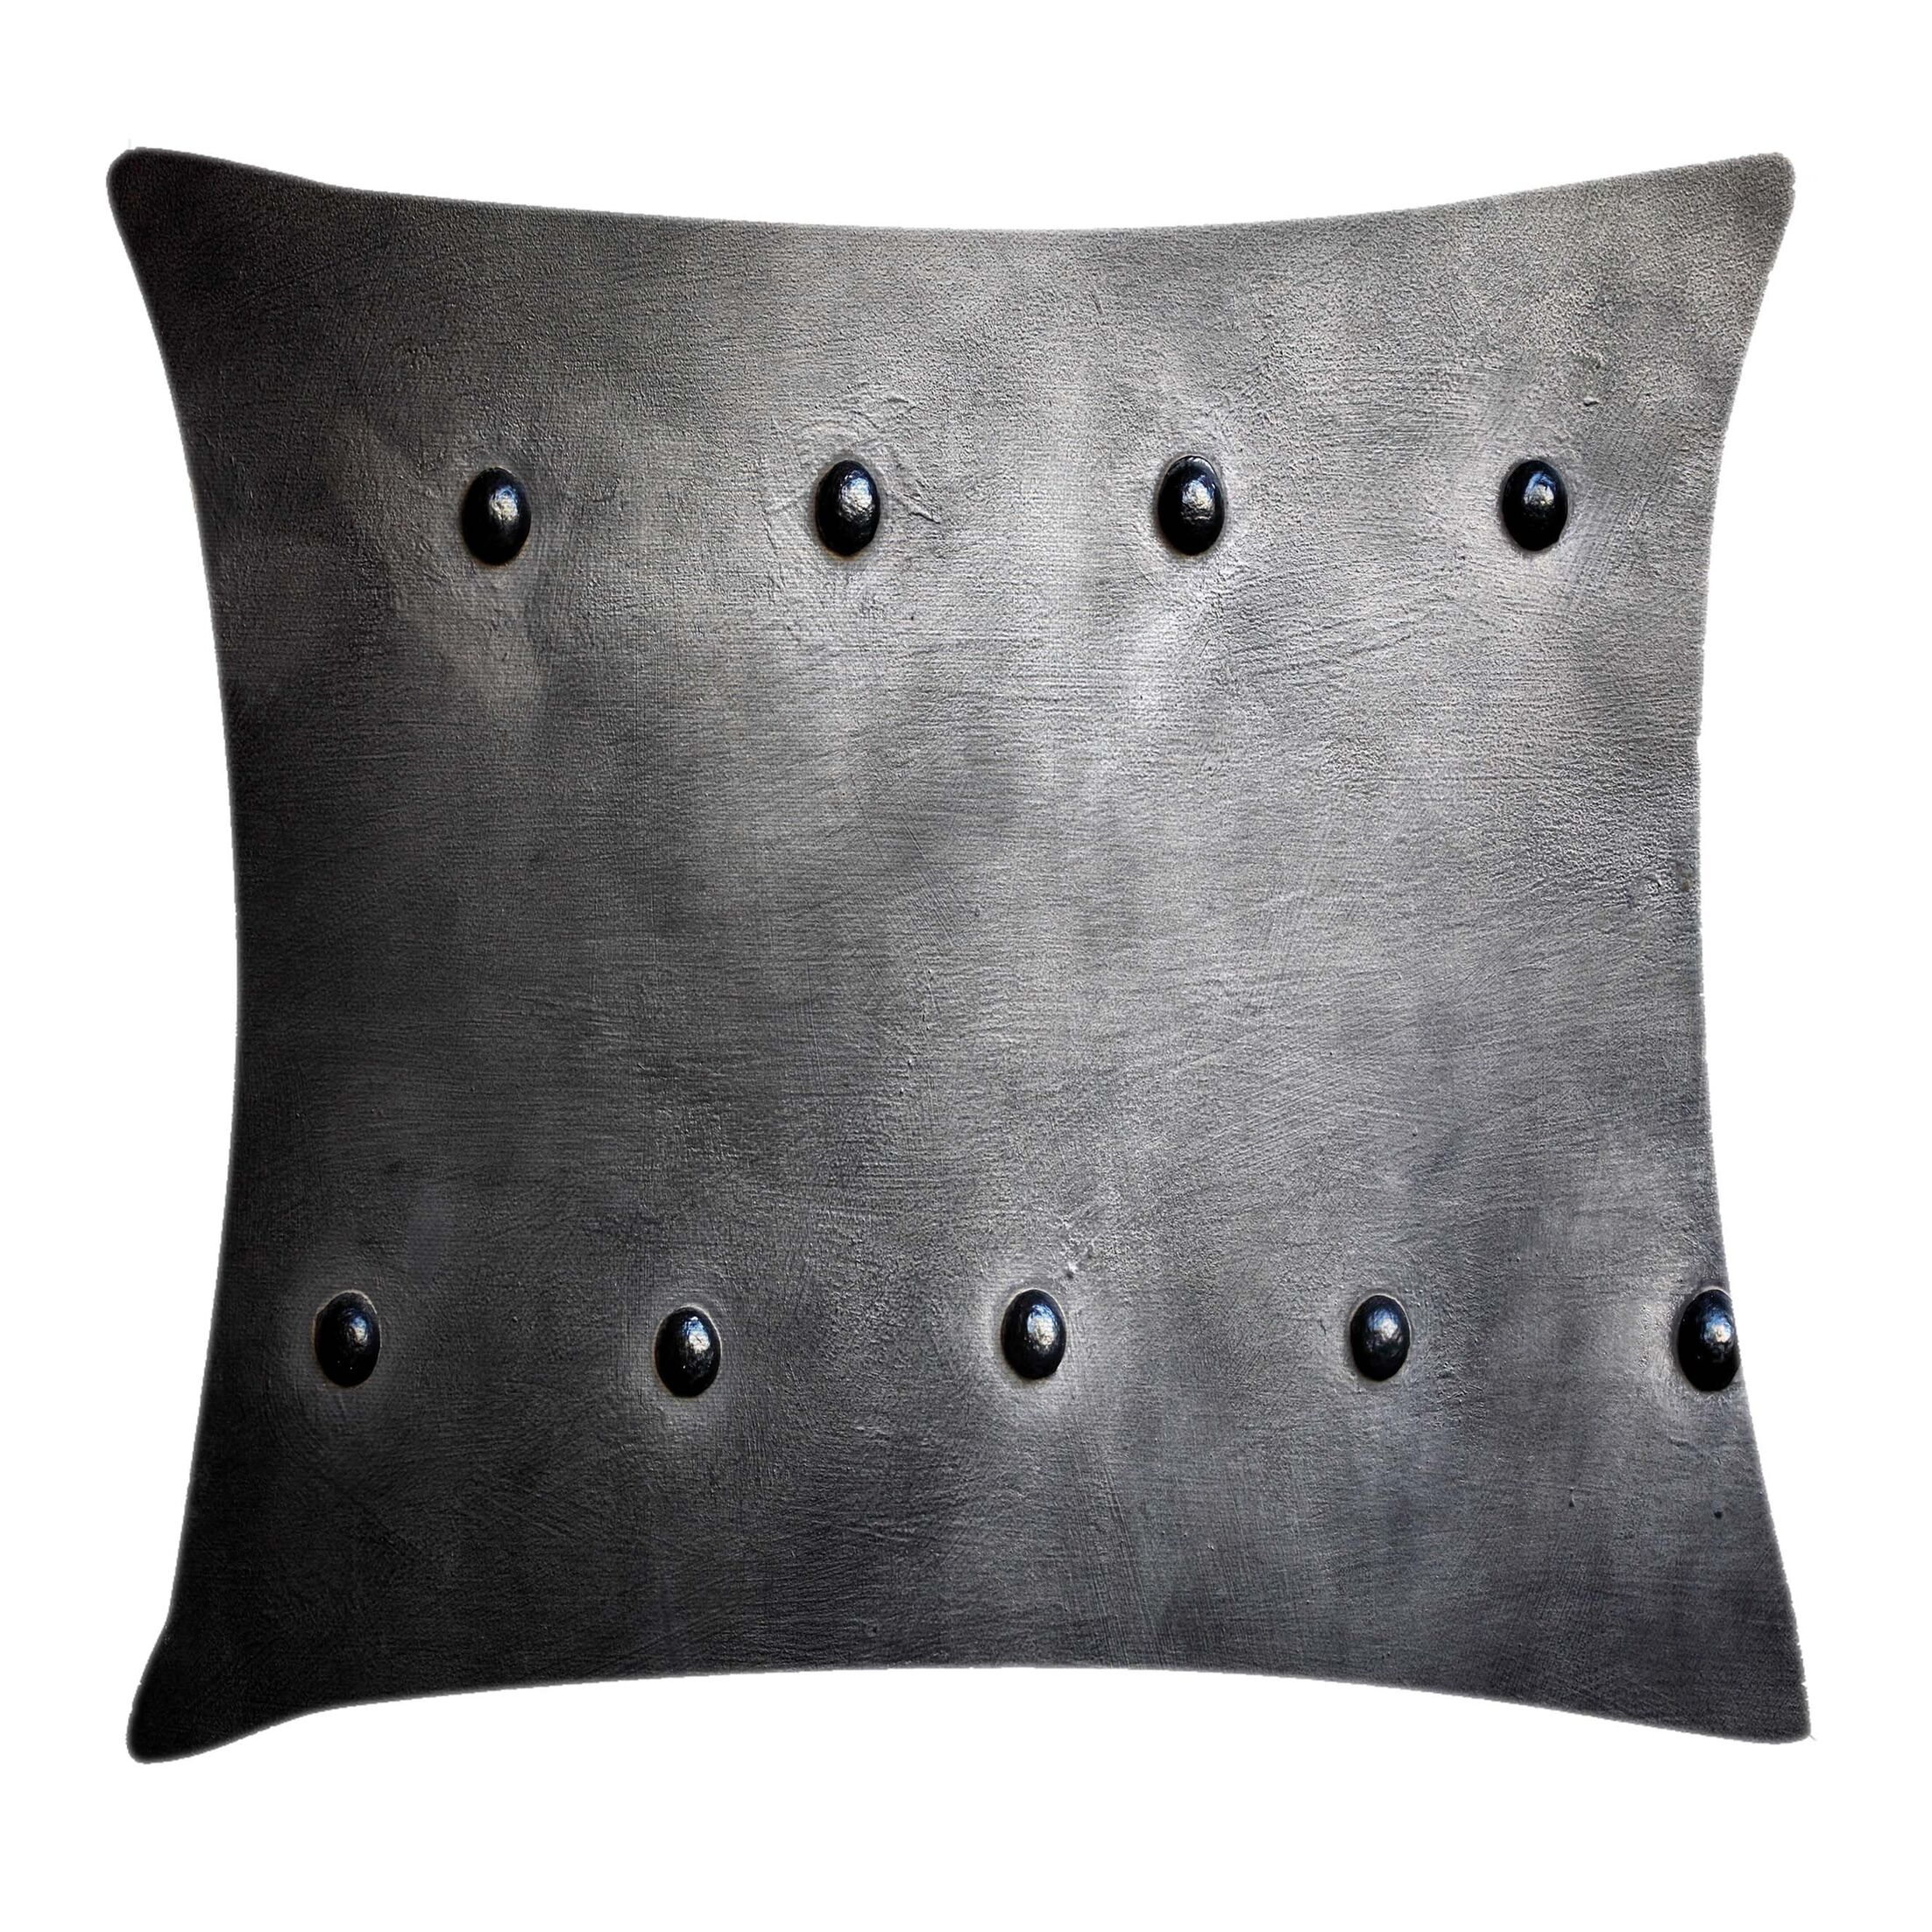 Metal Grunge Plate Square Pillow Cover Size: 24